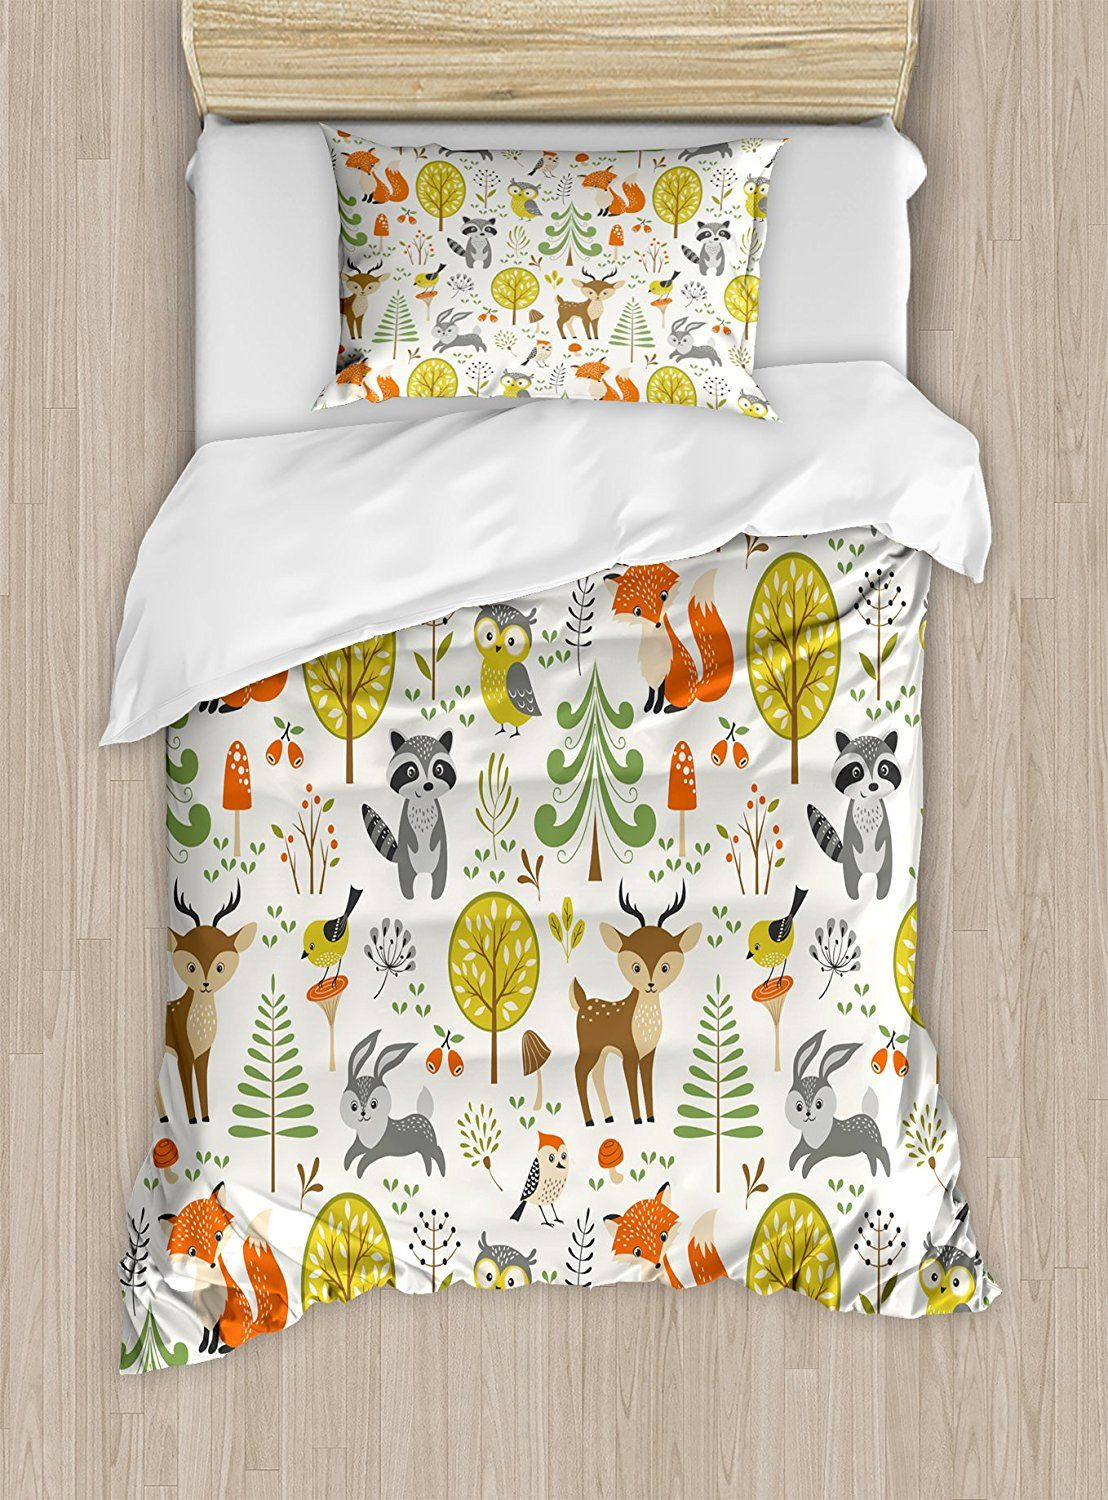 Elora S New Bed Love This Woodland Theme Kids Duvet